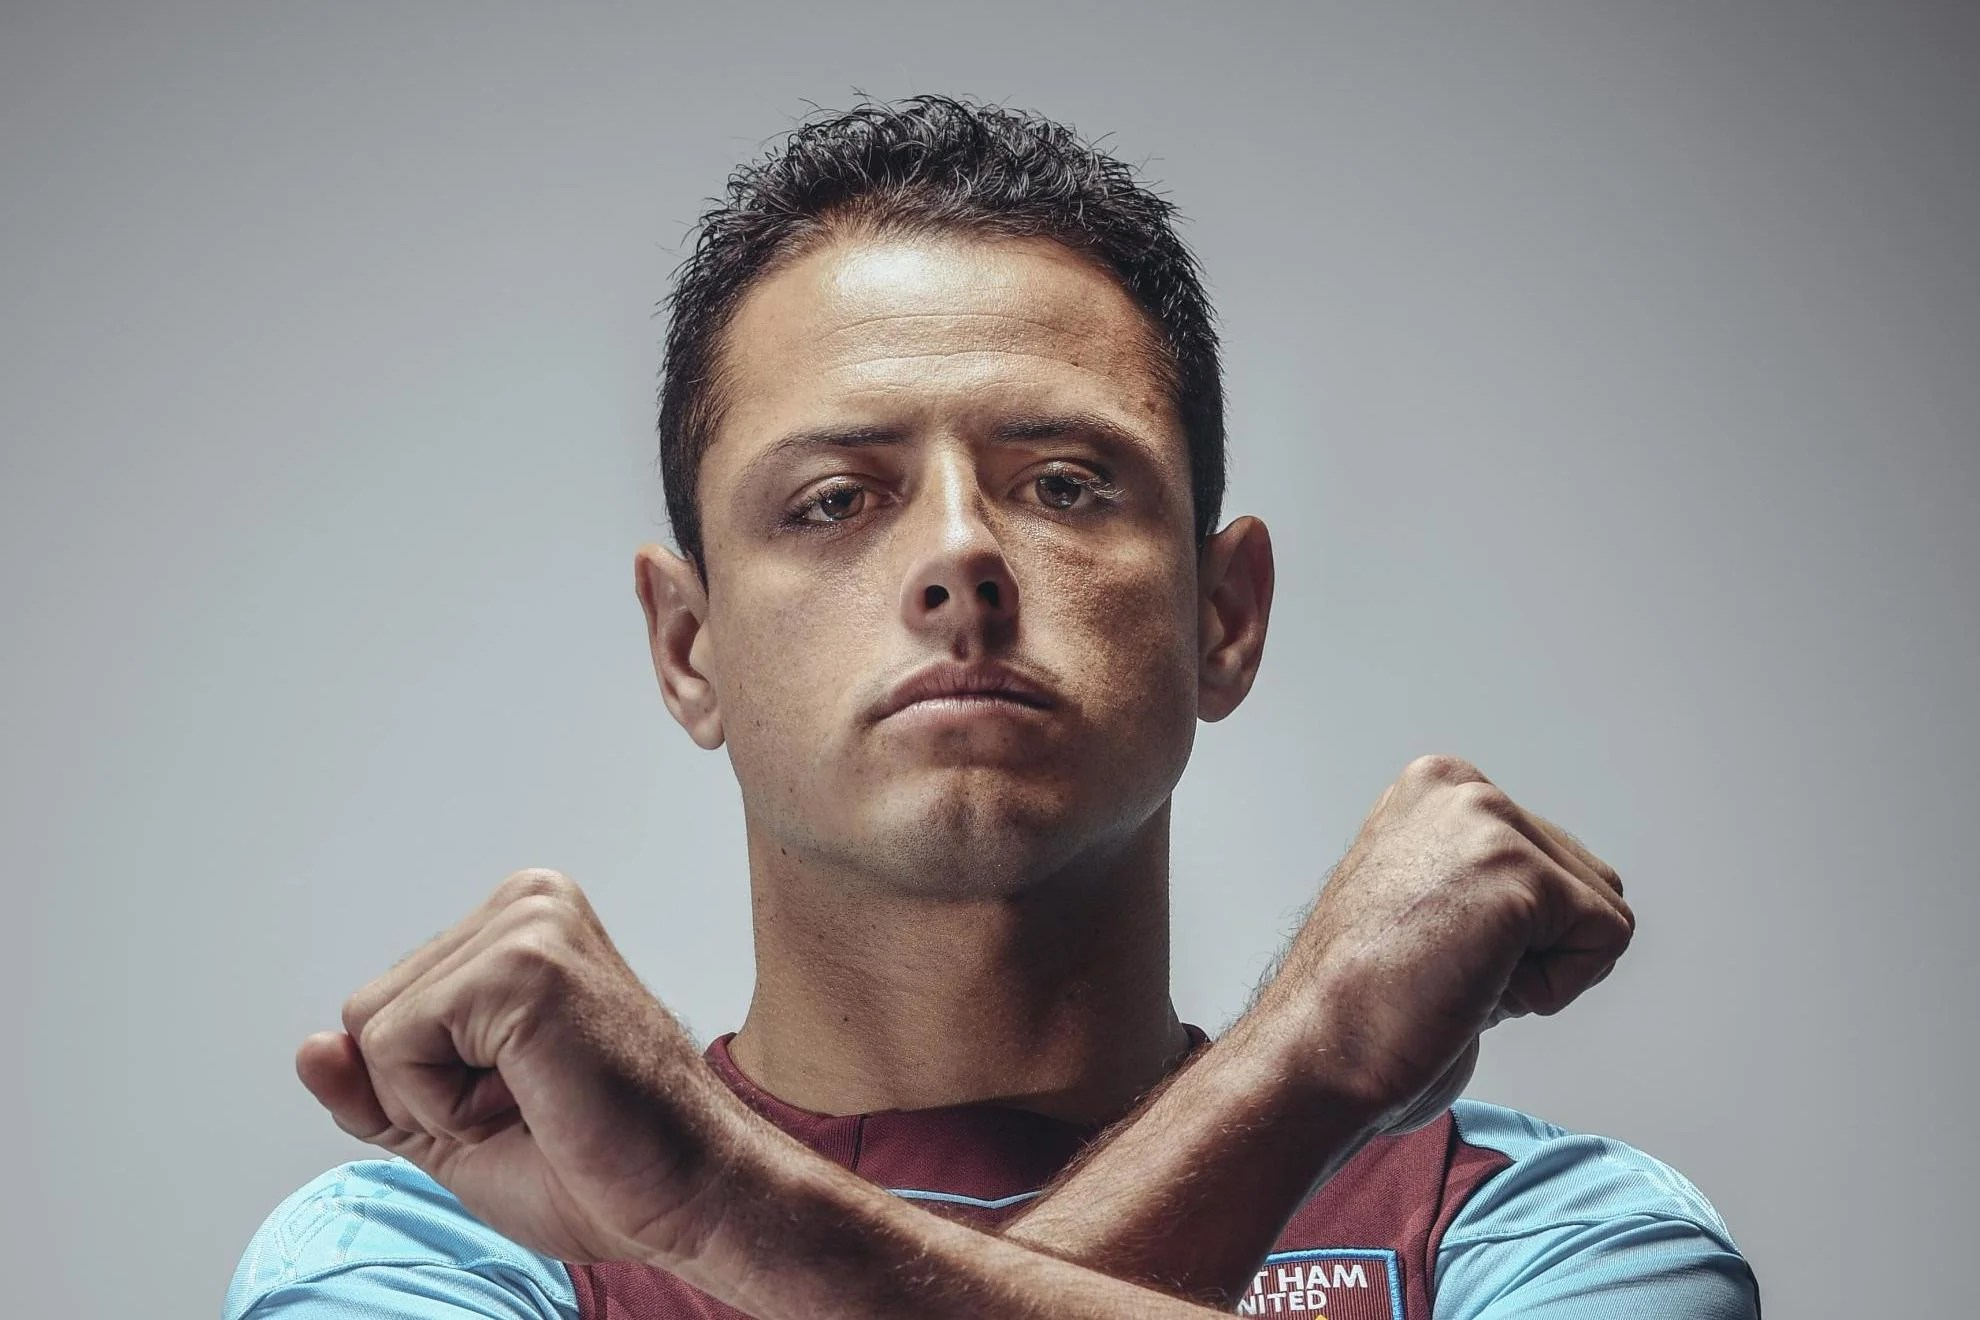 Wallpaper Arsenal Hd Why Javier Chicharito Hernandez Can Be West Ham S Baby